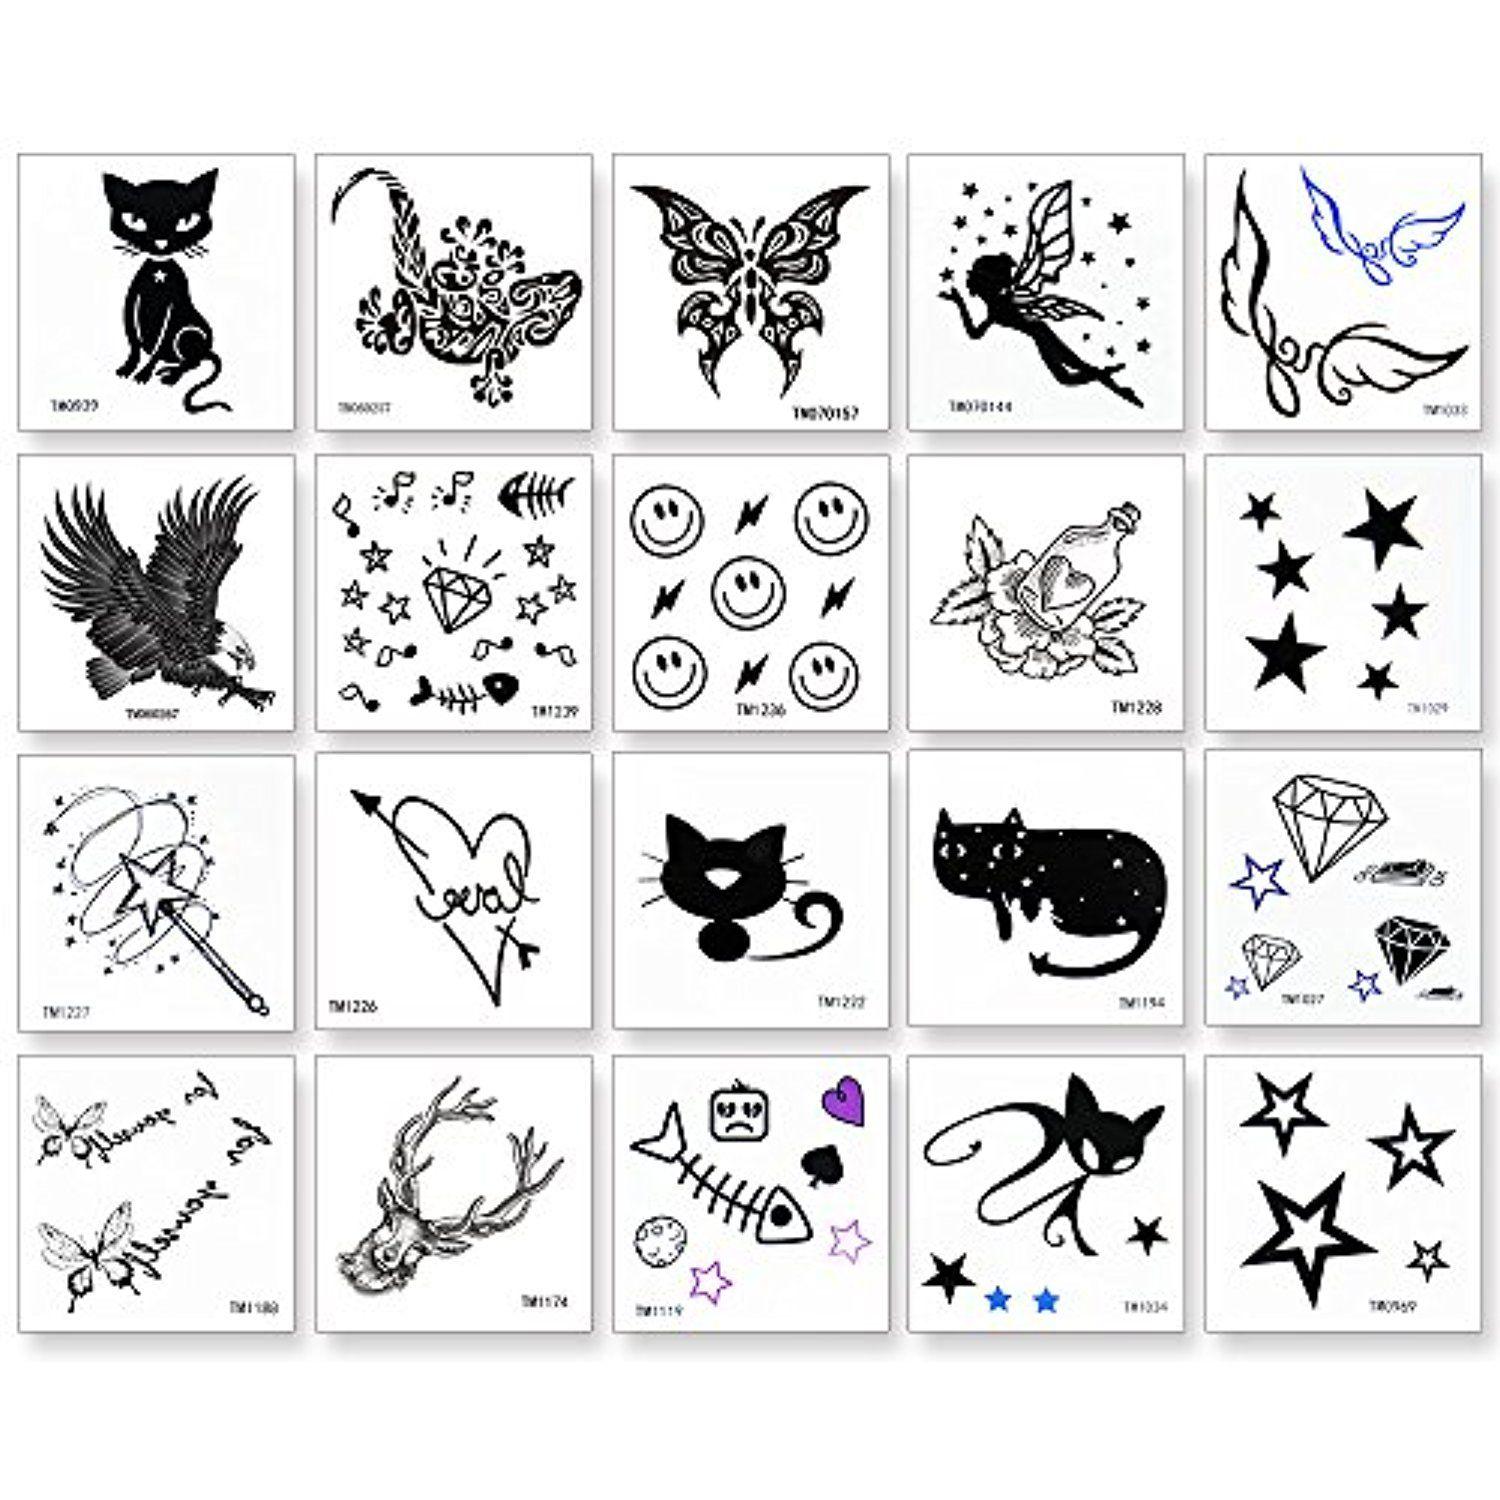 20 Pieces Temporary Tattoo Rose Animals And Butterfly Flash Tattoo Easy To Apply And Long Lasting For Wome Temporary Tattoos Tattoos Large Temporary Tattoos